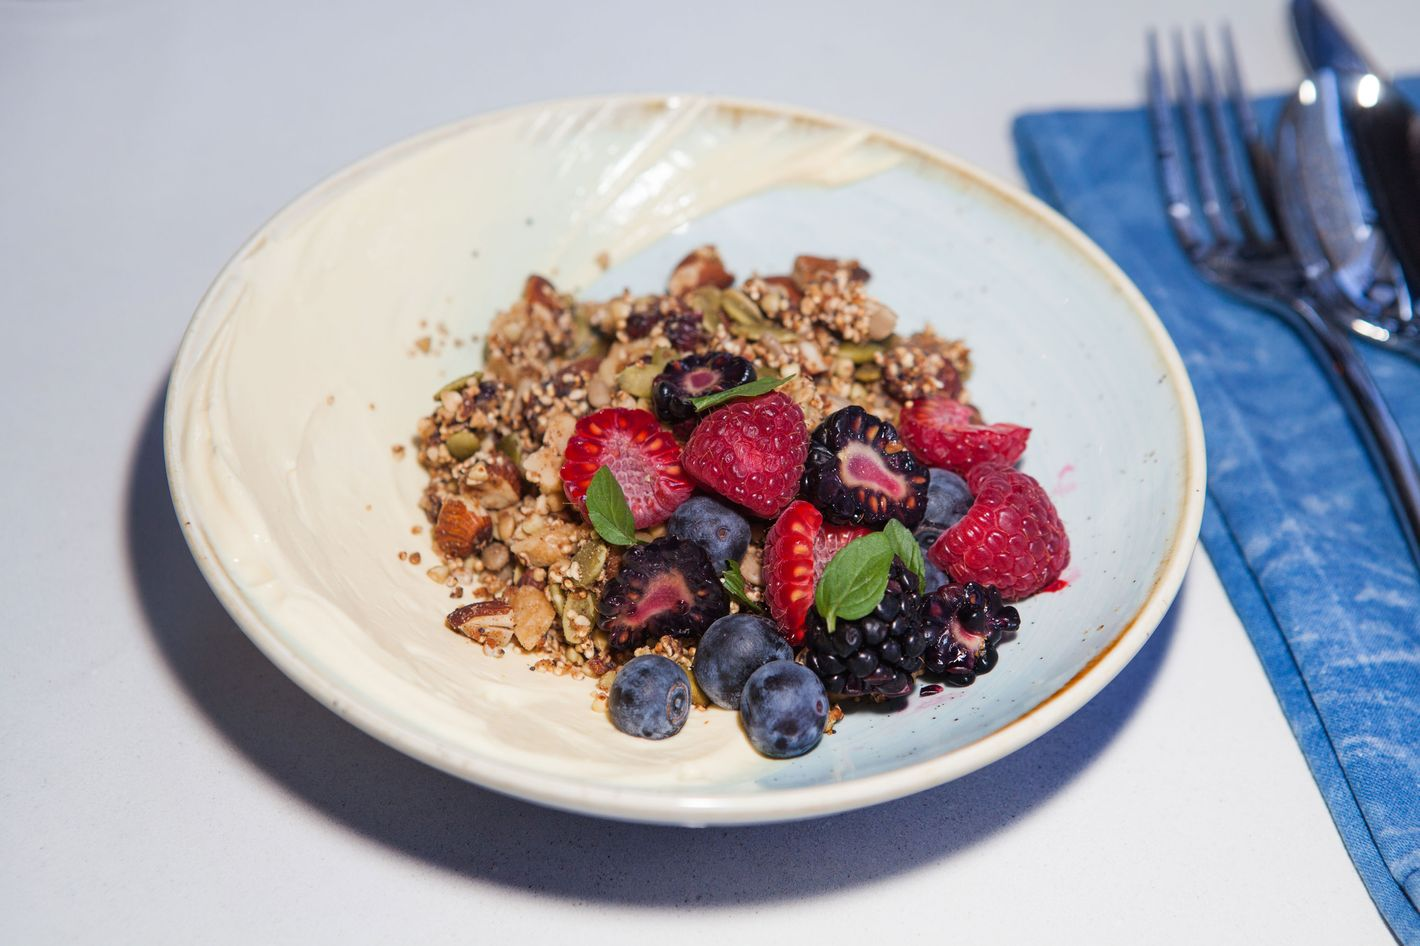 Housemade granola with passion-fruit yogurt and berries.